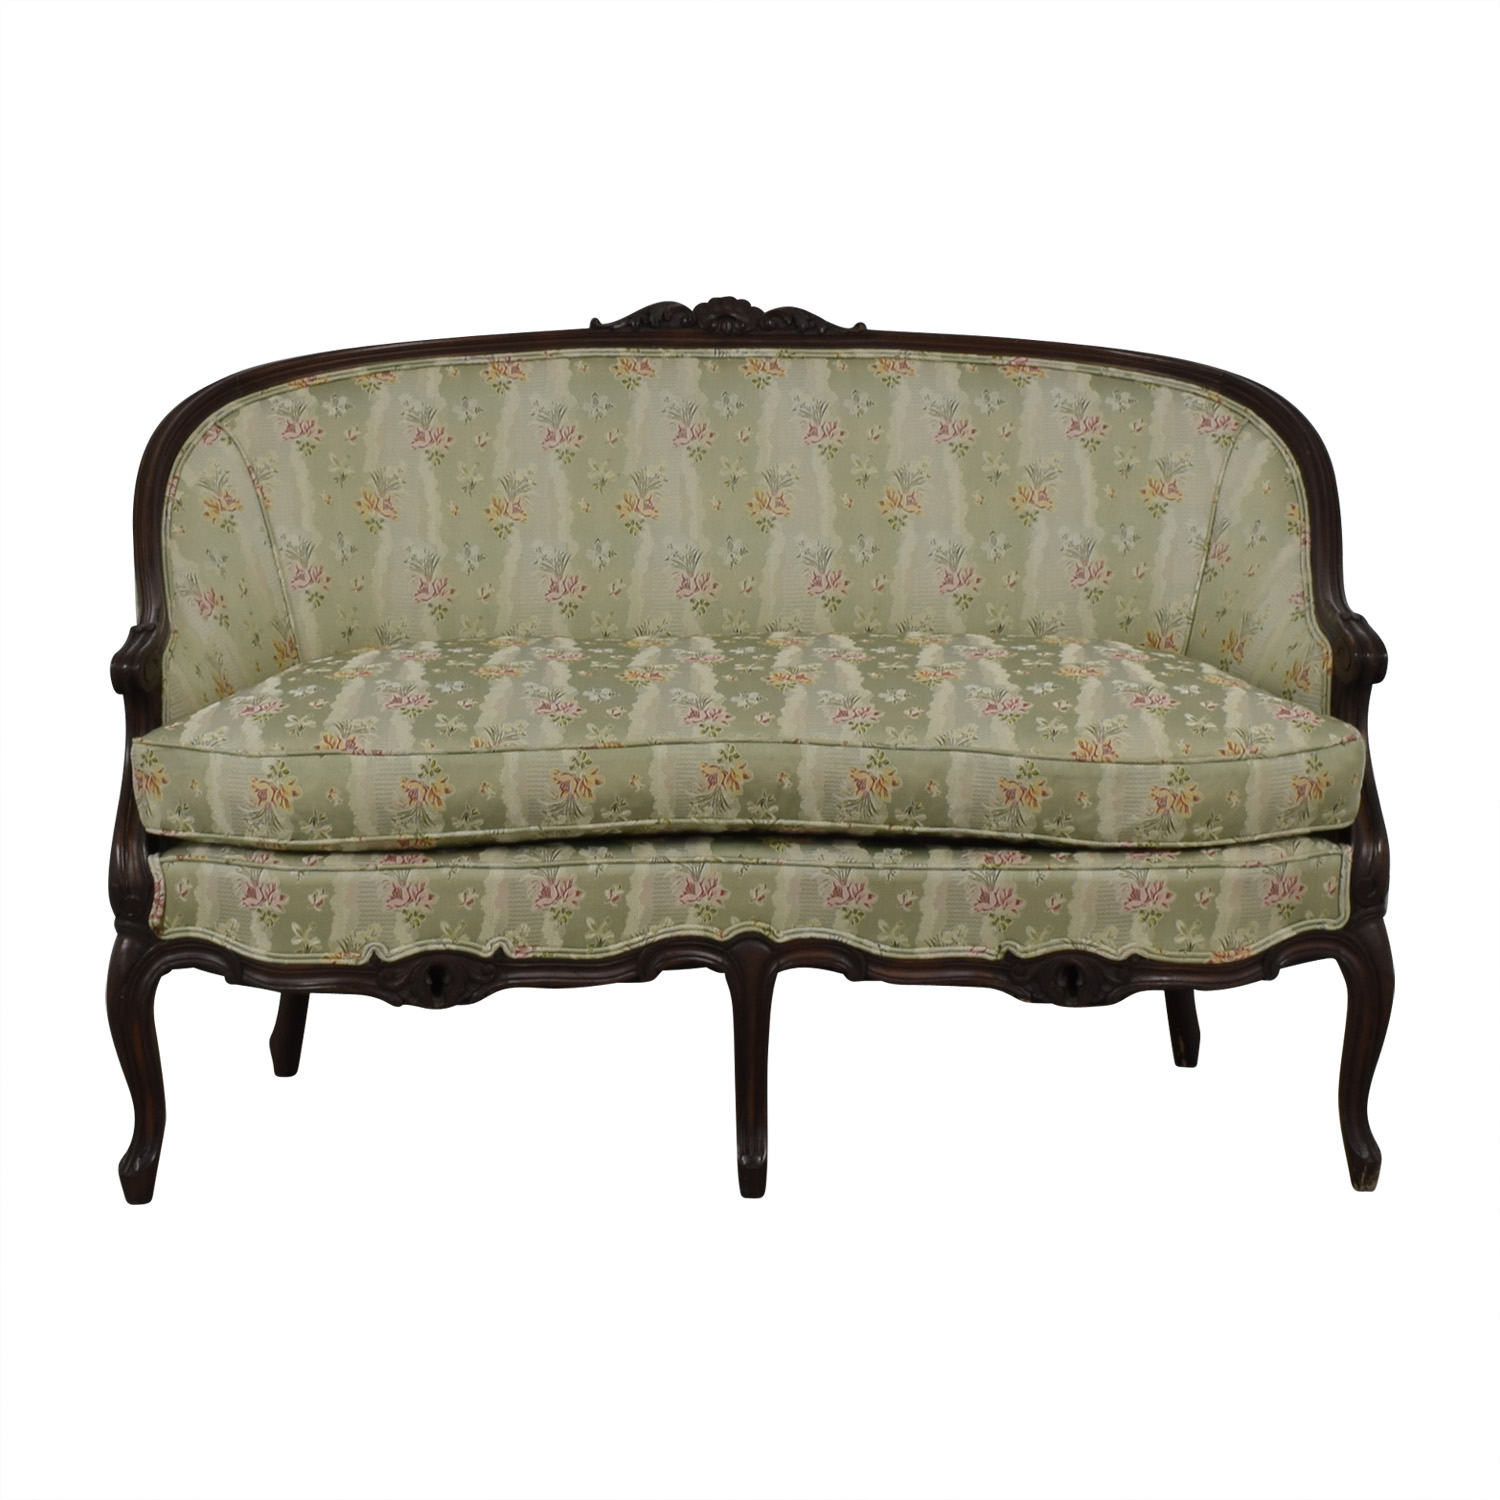 90 Off Antique French Floral Upholstered Single Cushion Loveseat Sofas